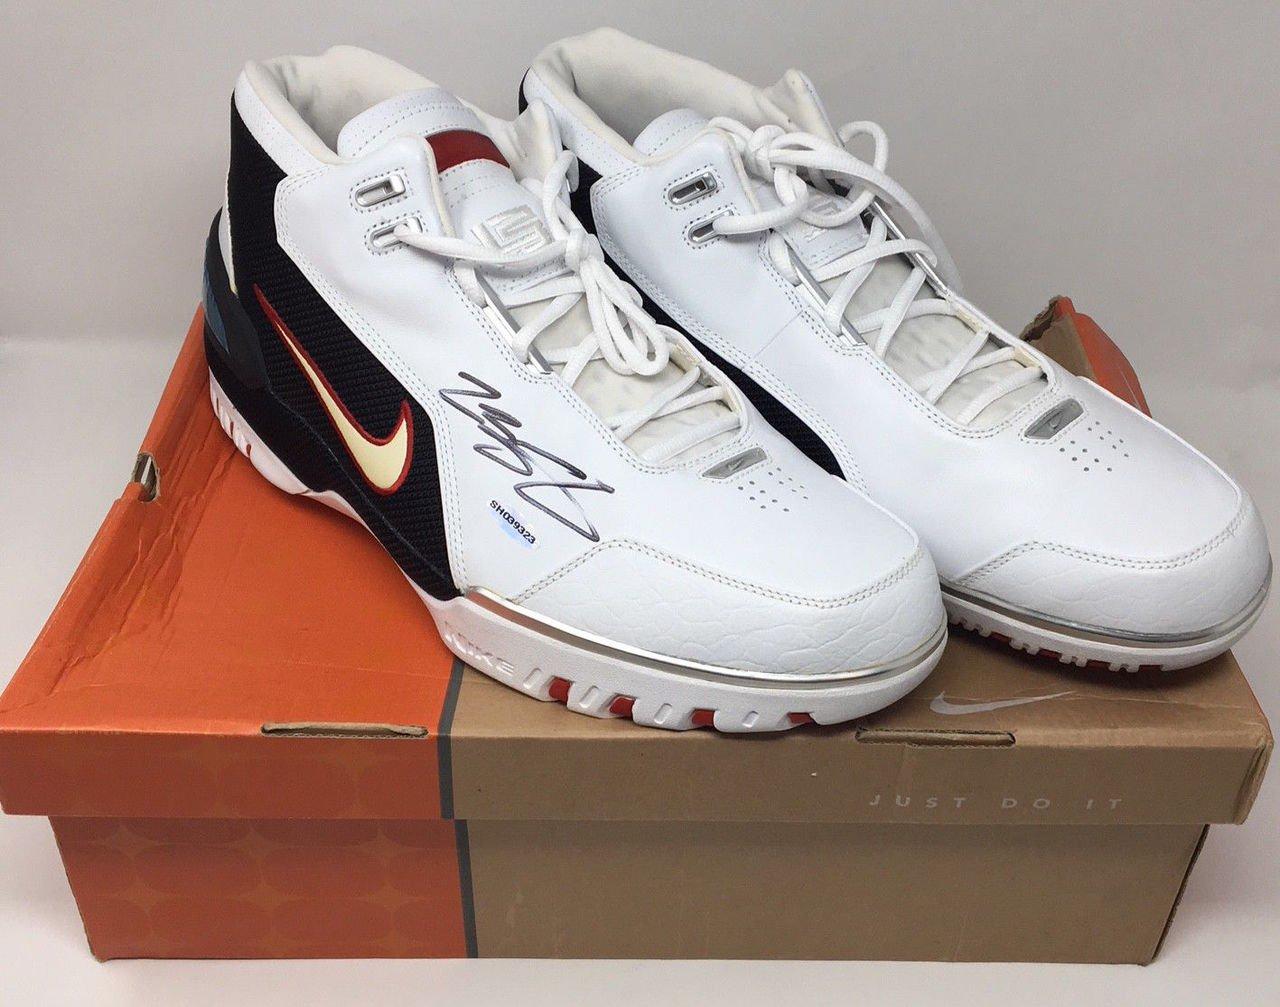 b9c39884795 Amazon.com  LEBRON JAMES Signed Original Air Zoom Generation Rookie Year  Size 15 Shoes UDA  Sports Collectibles